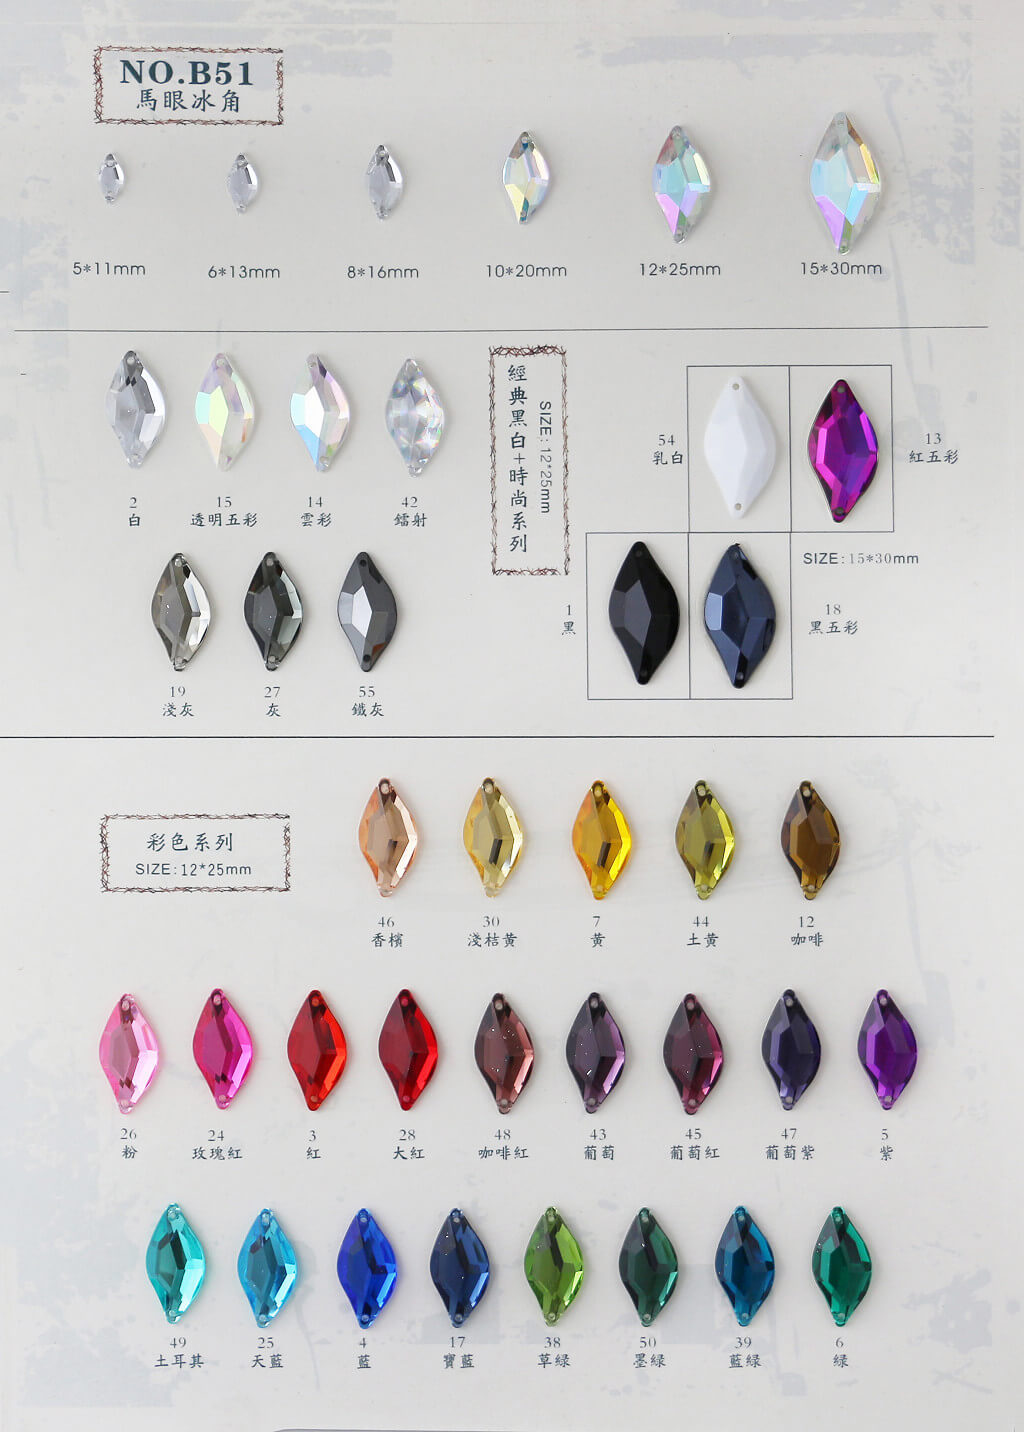 sew on rhinestones wholesale catalogue